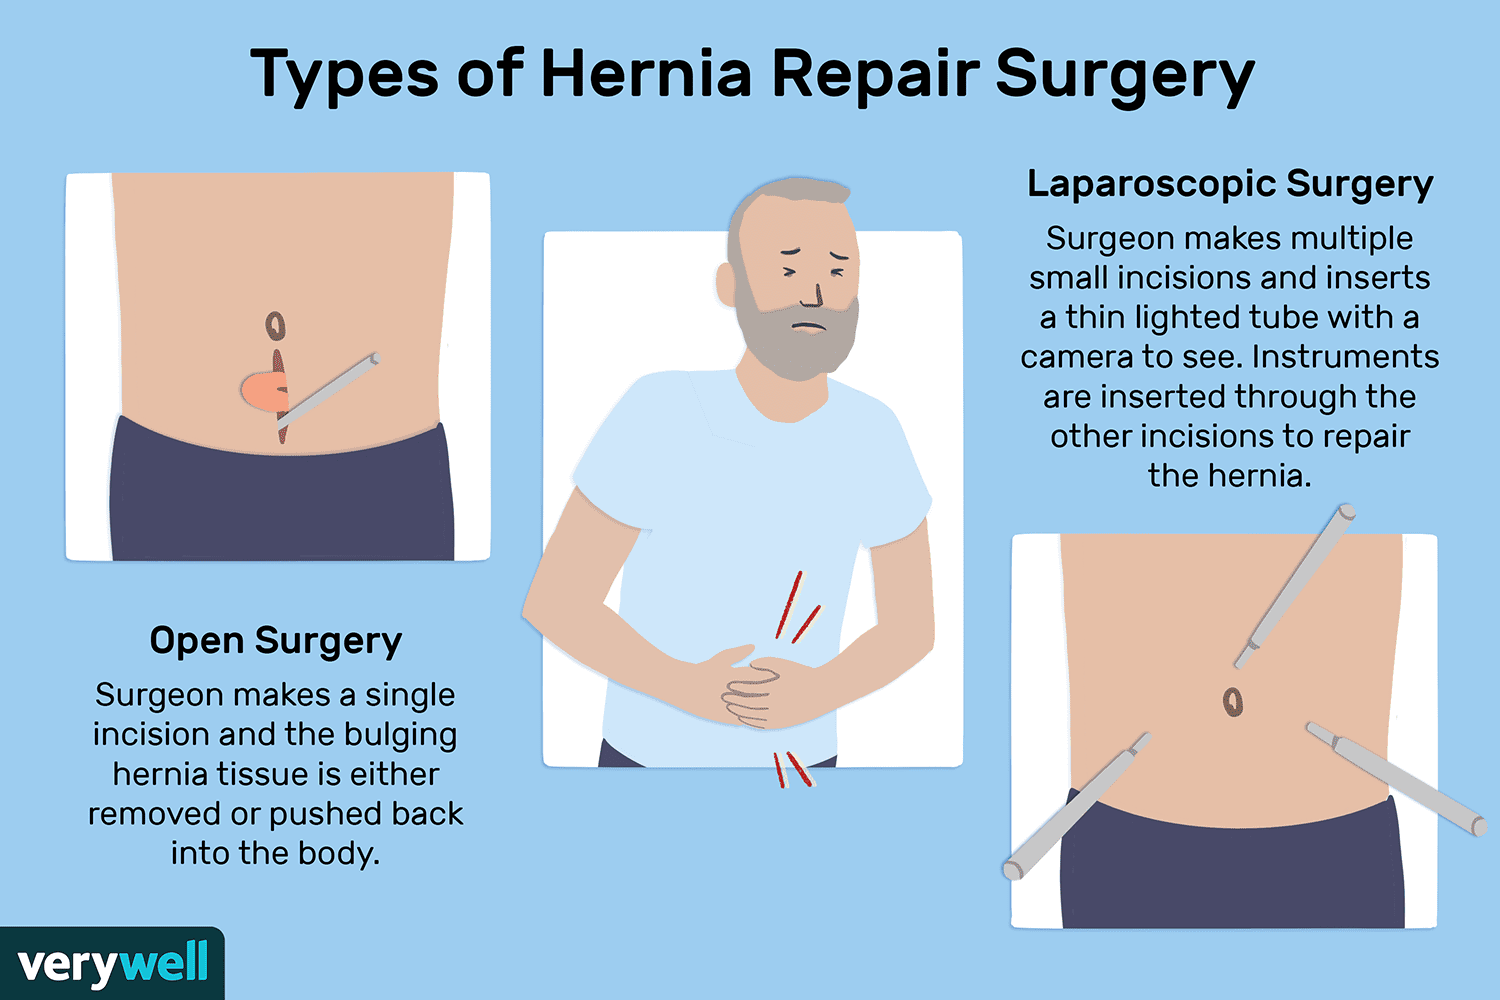 Hernia Repair Surgery Overview